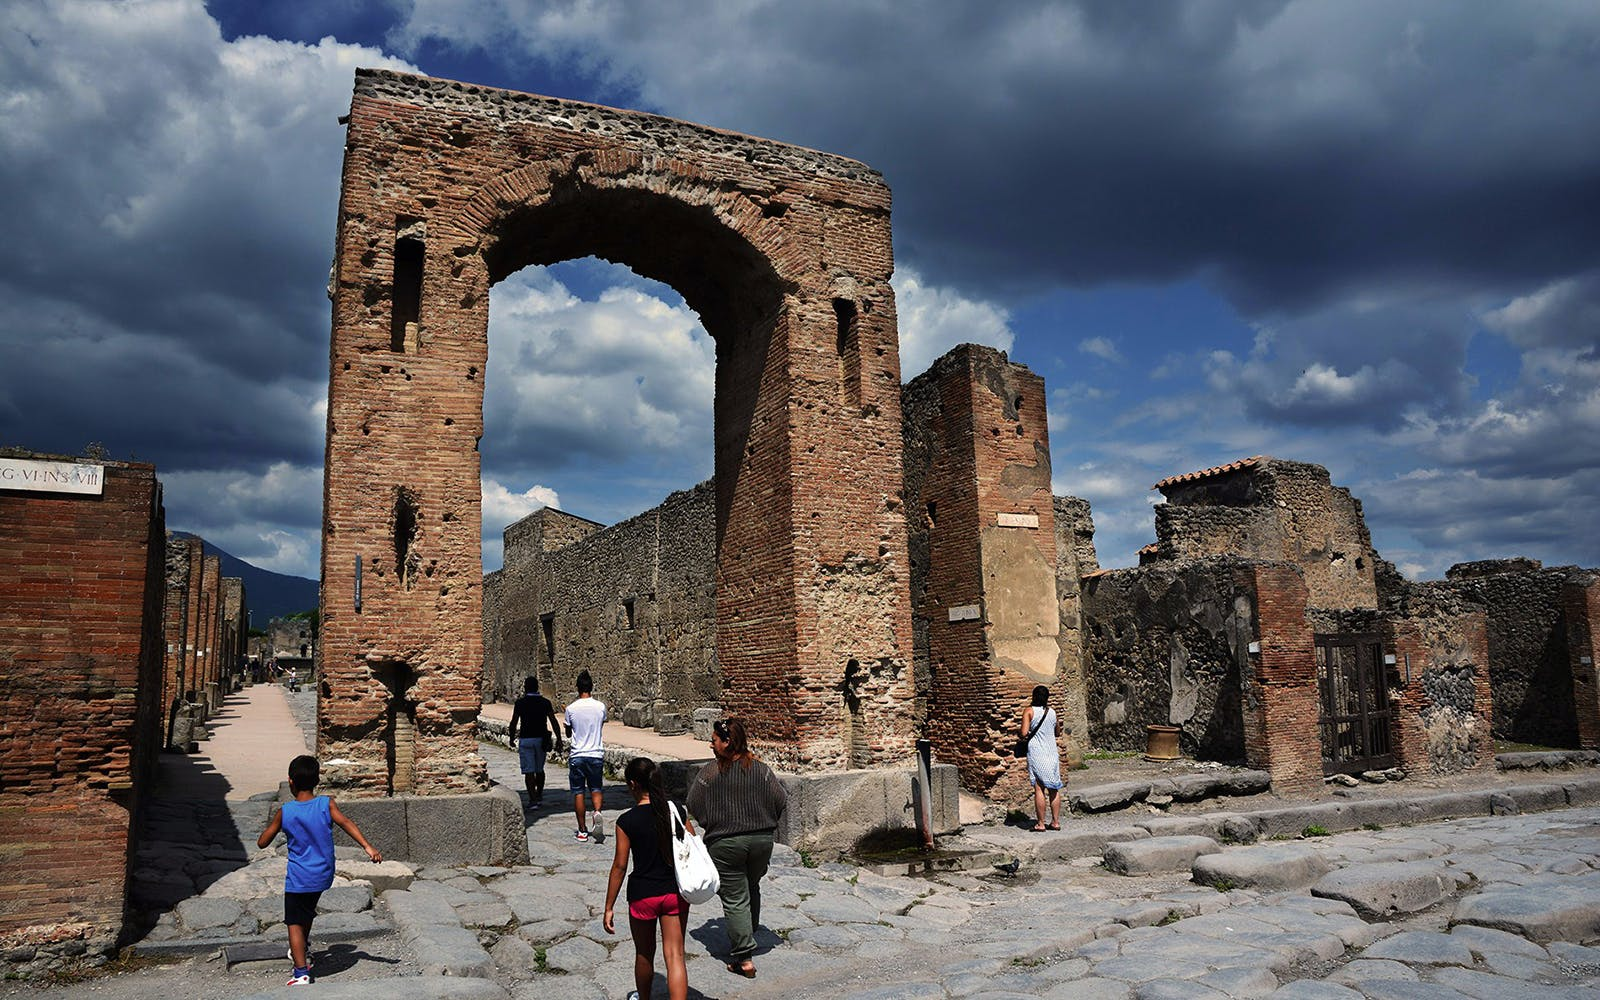 Pompeii and Mt. Vesuvius Volcano Day Trip from Rome